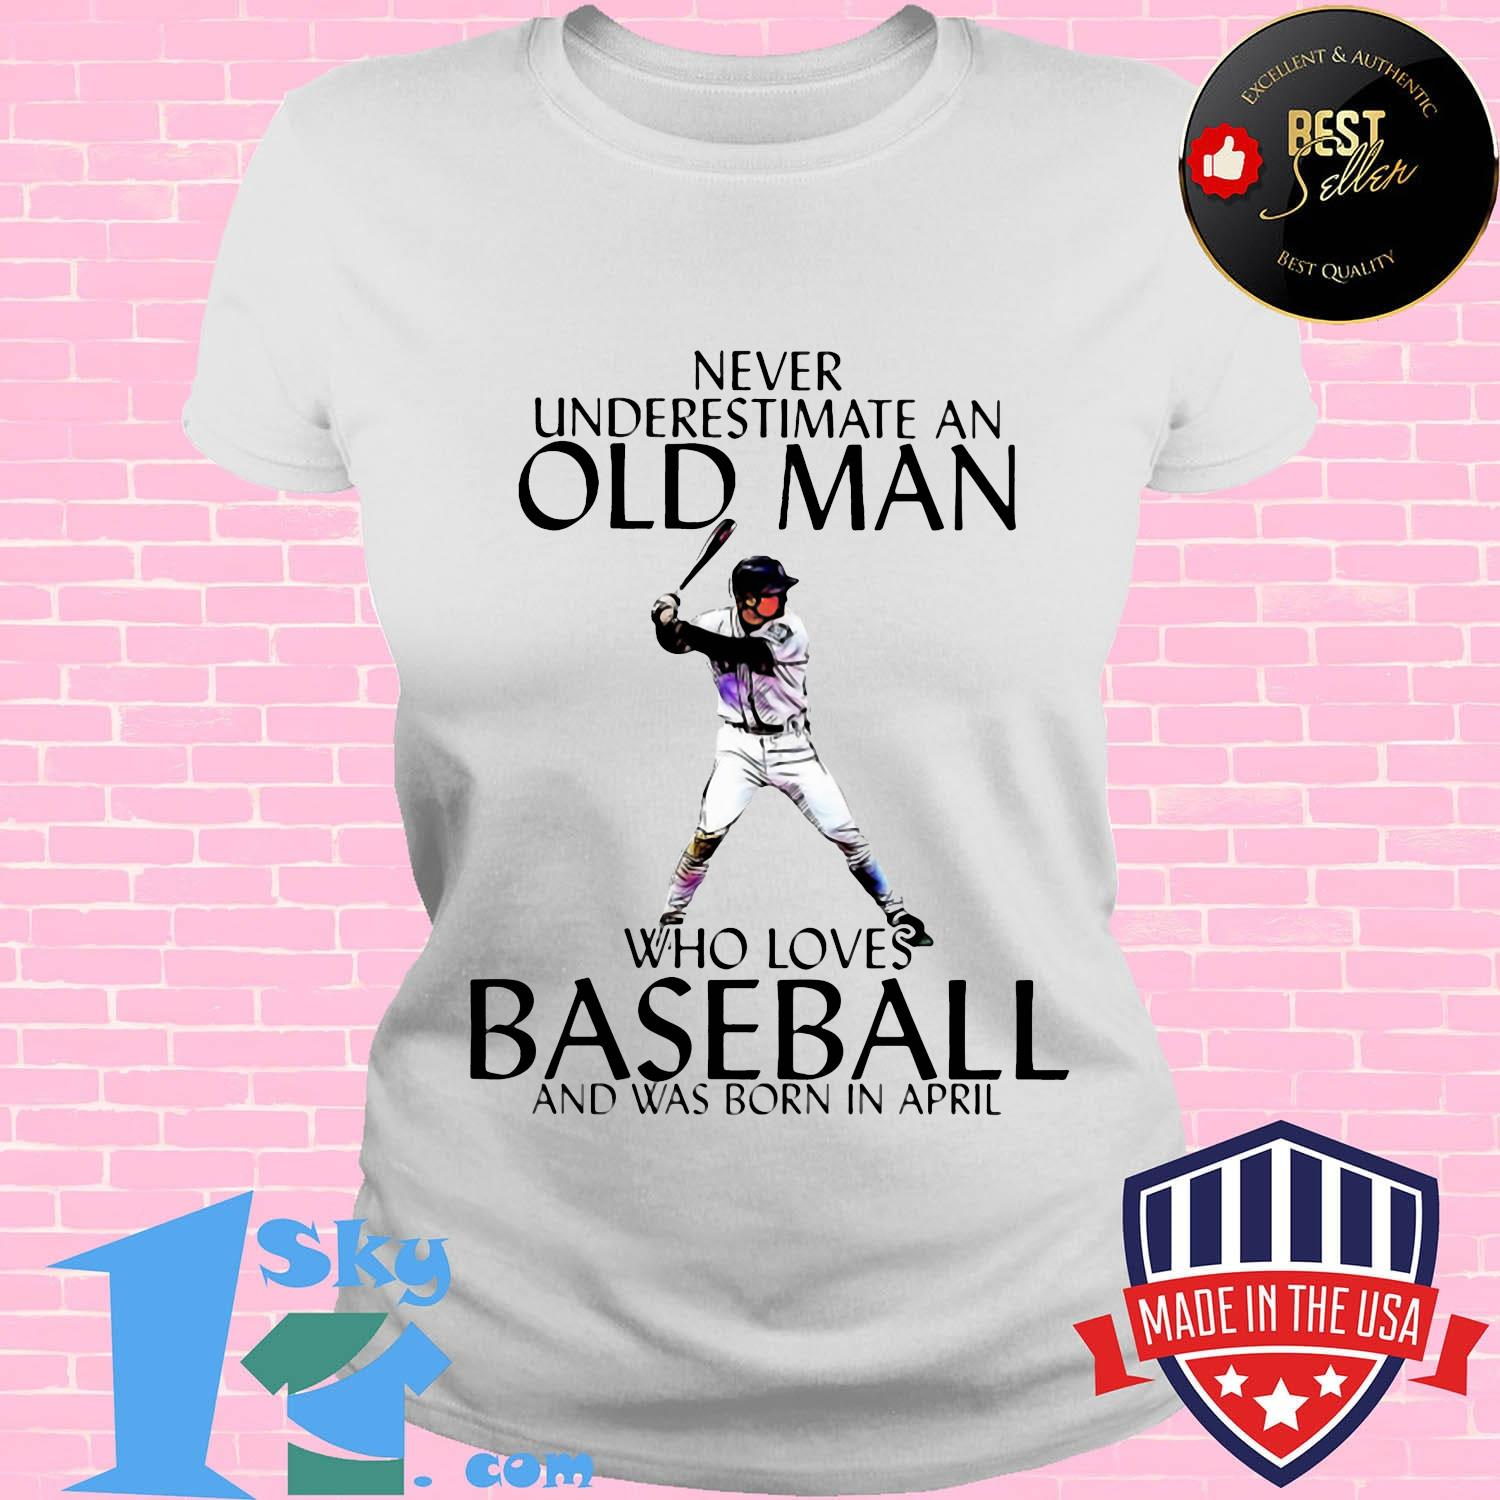 Never underestimate an old man who loves baseball and was born in april shirt